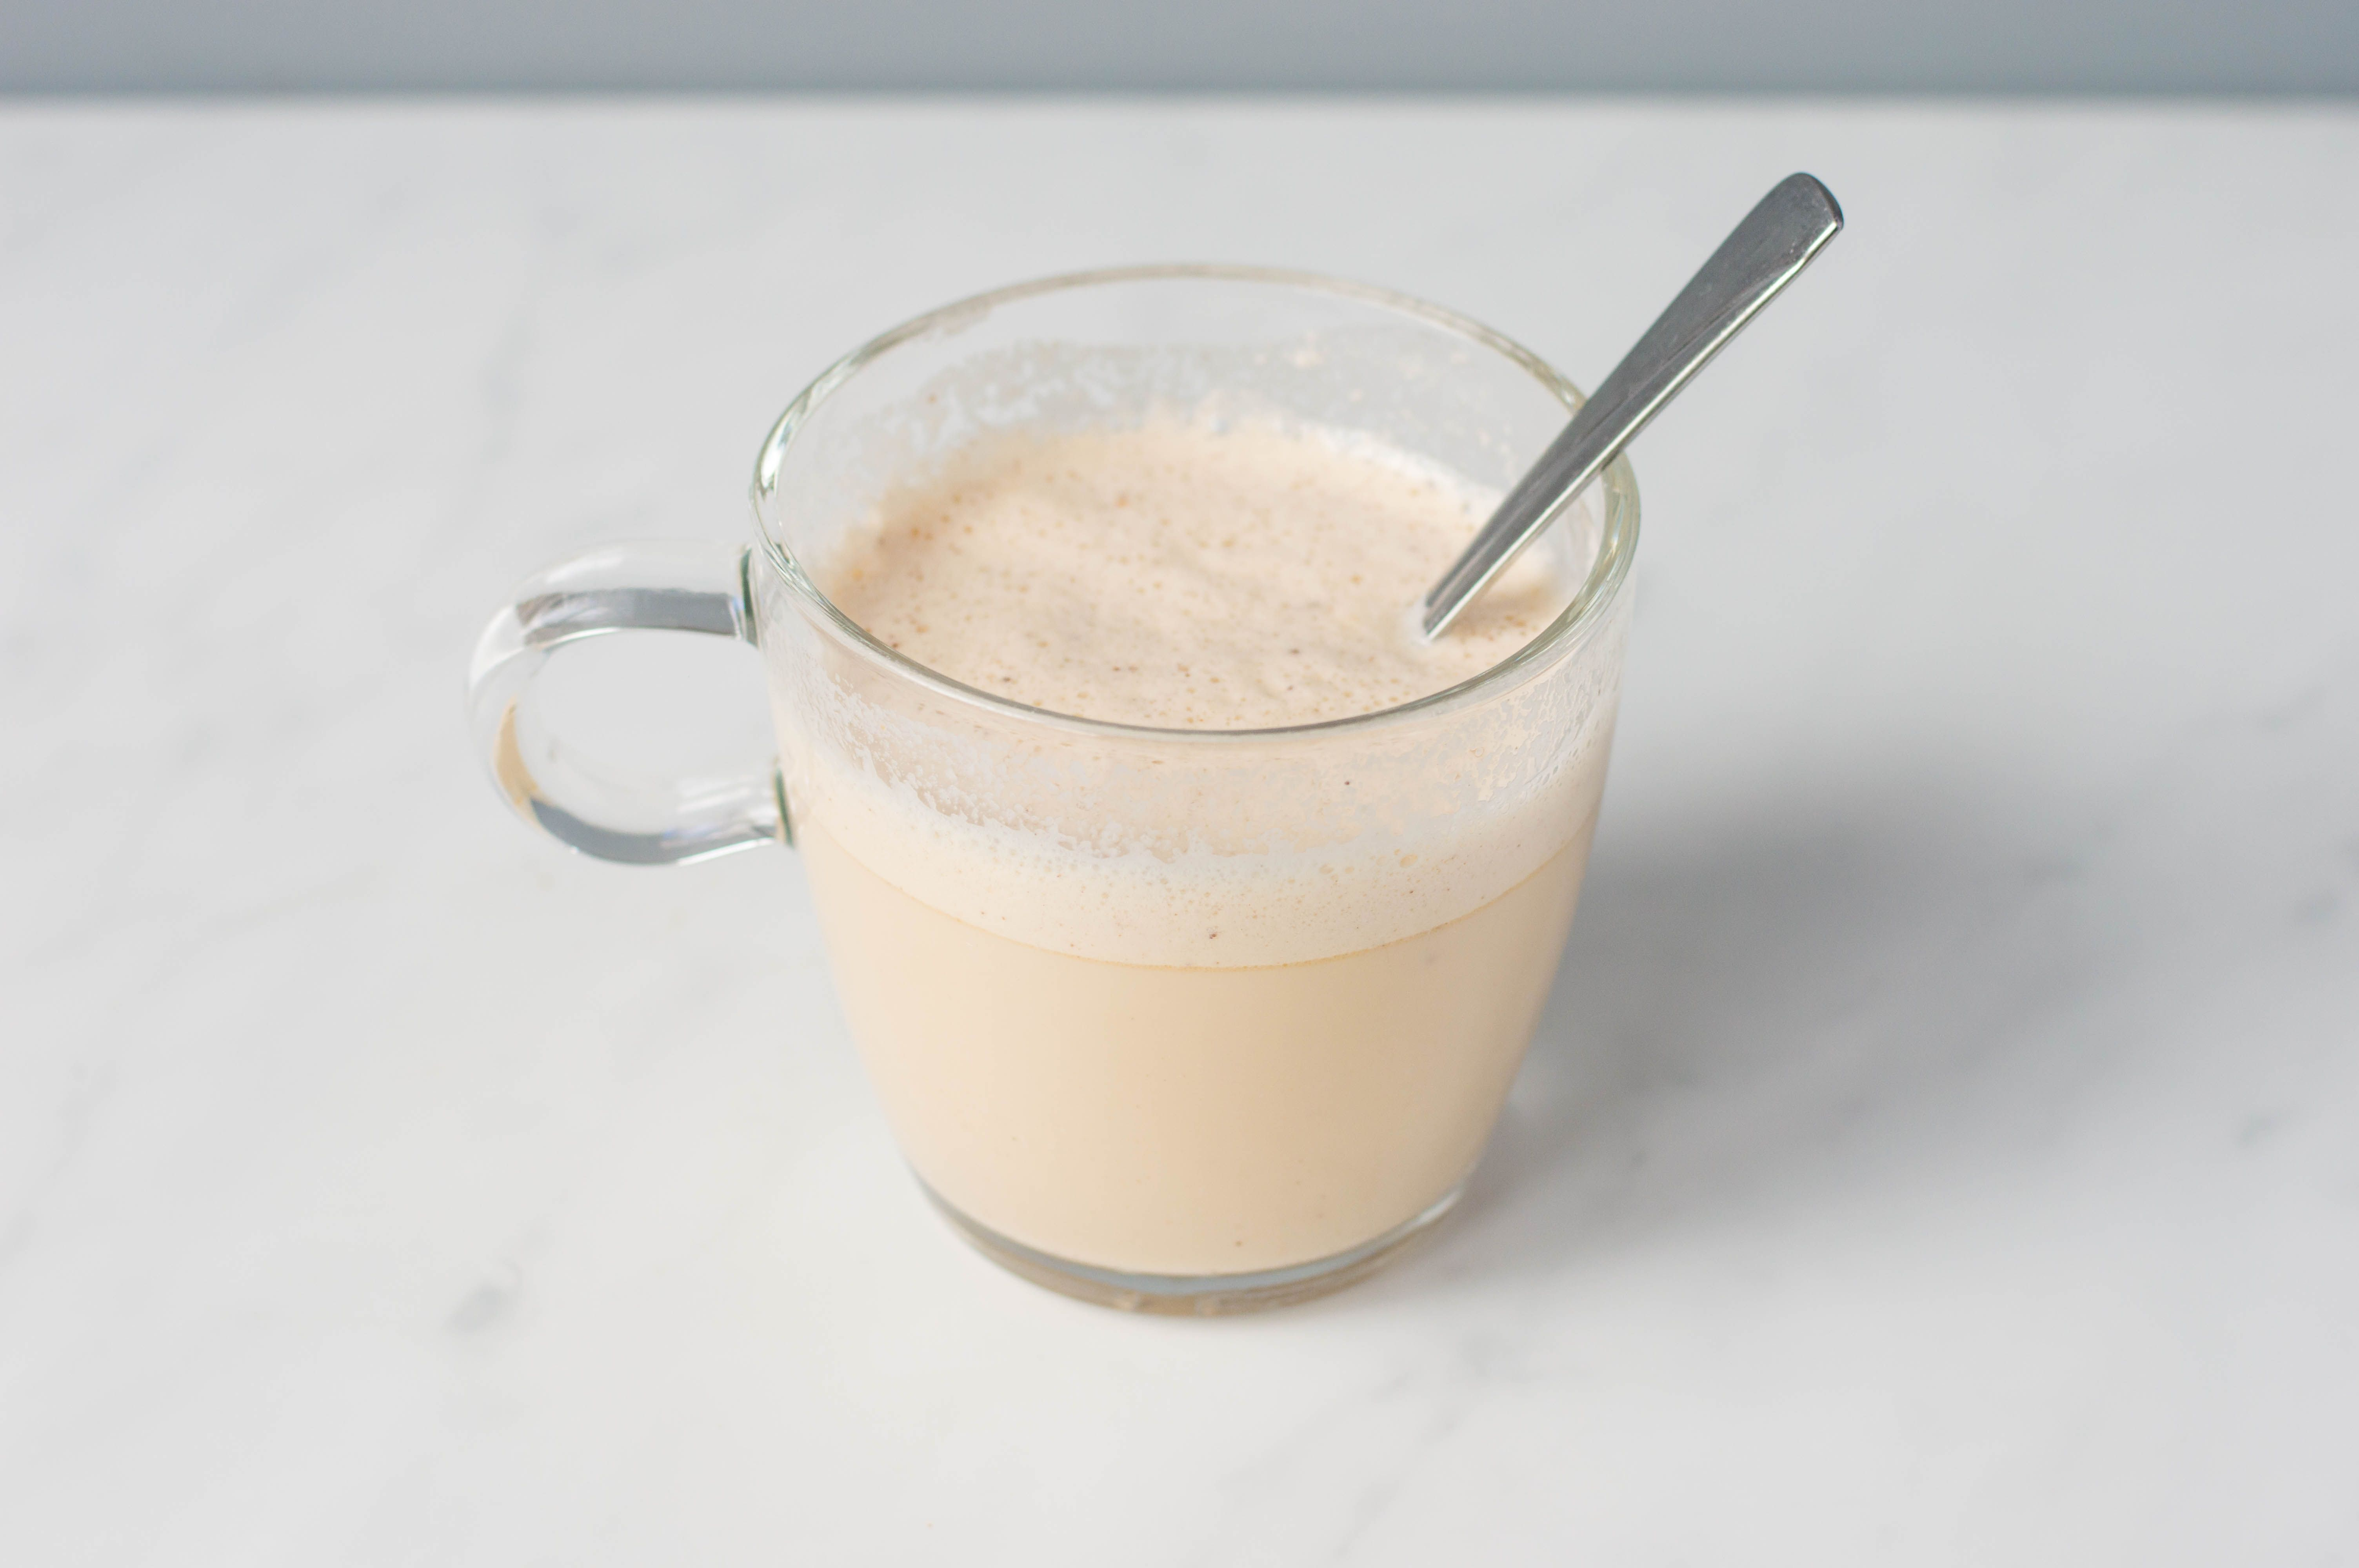 Tom & Jerry cocktail filled with hot milk